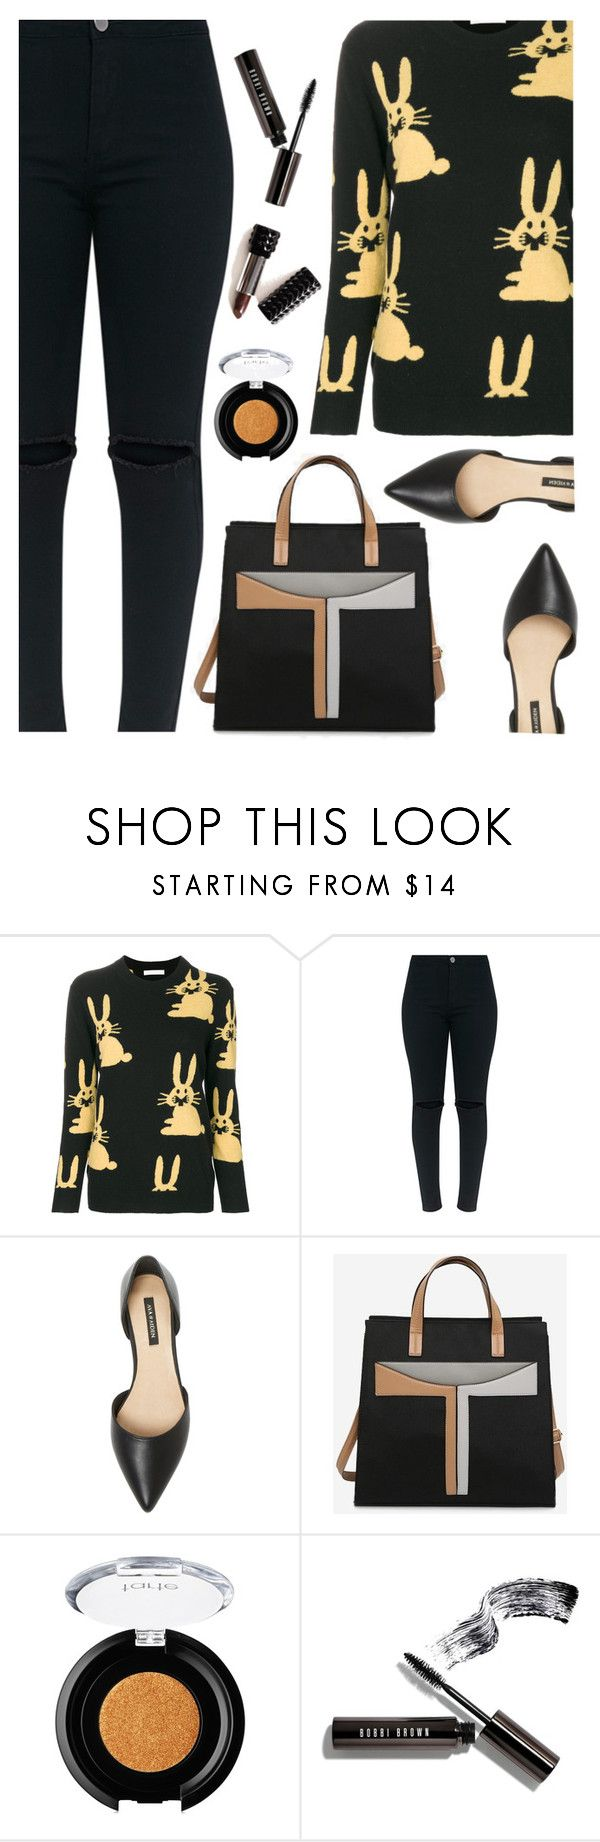 """""""black and whimsy"""" by juliehooper ❤ liked on Polyvore featuring Peter Jensen, Ava & Aiden, tarte, Kat Von D, Bobbi Brown Cosmetics, polyvoreeditorial and blackandwhimsy"""